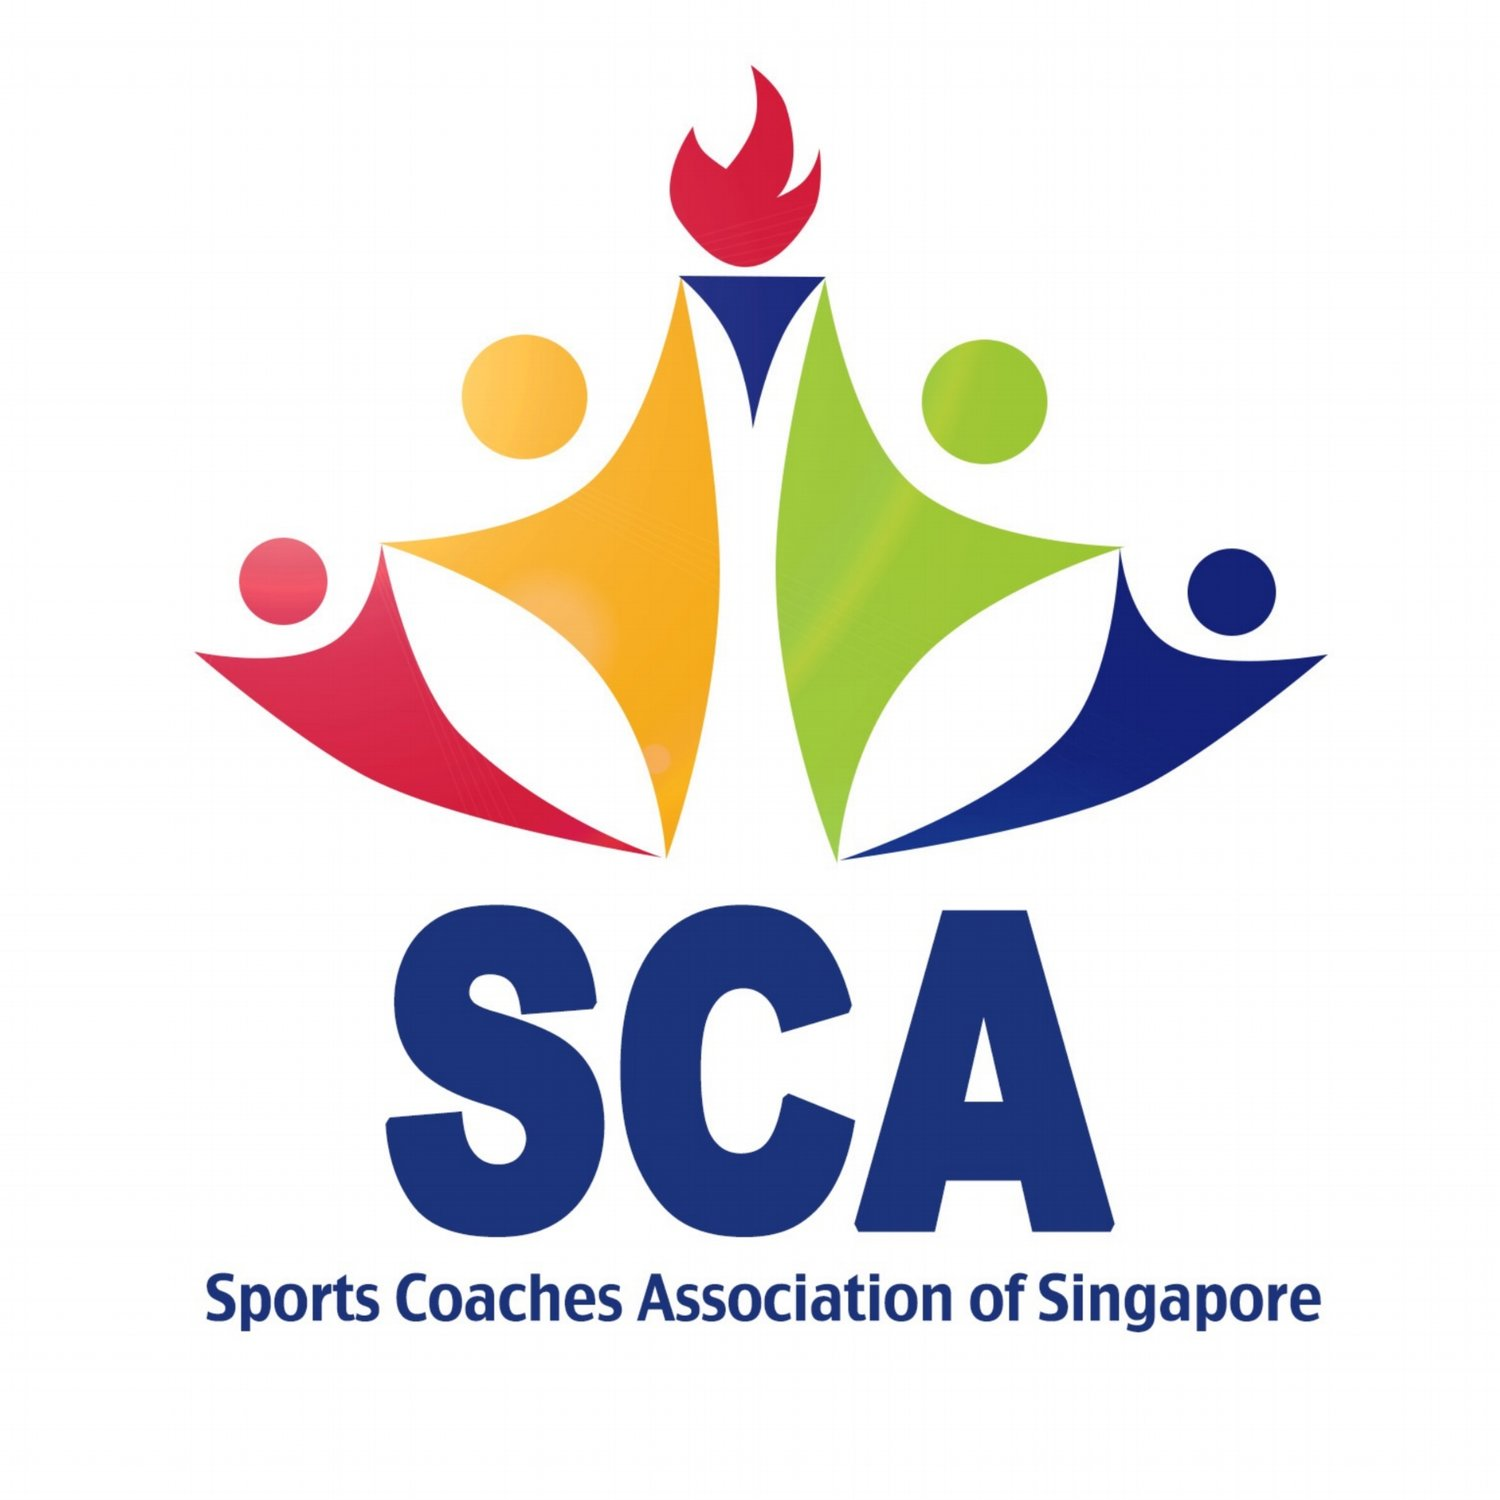 Sports Coaches Association of Singapore